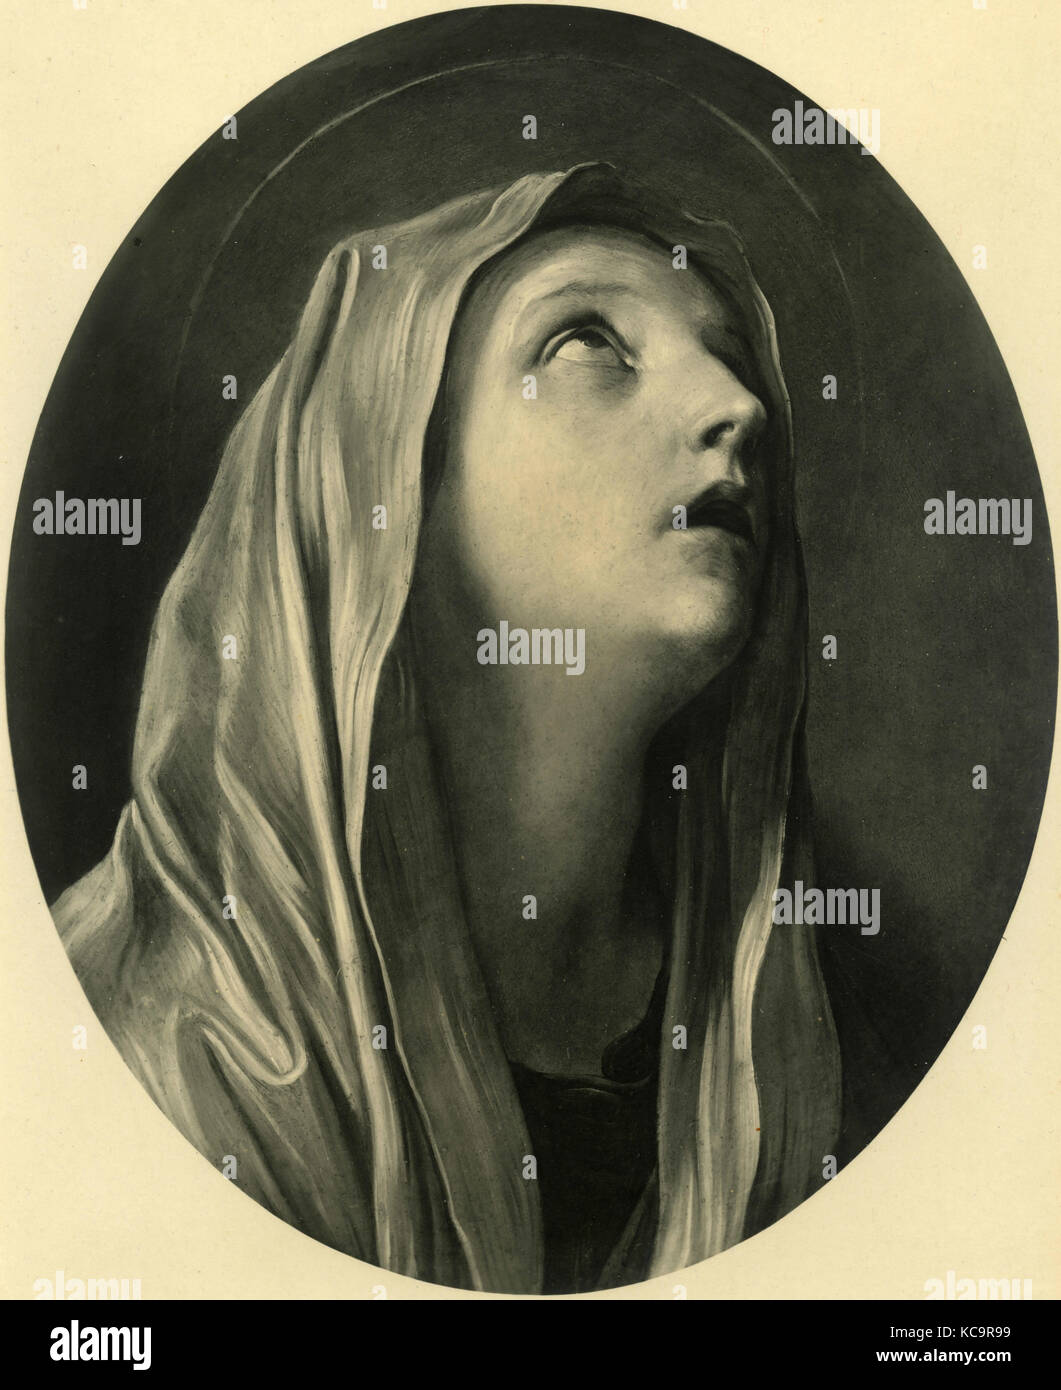 Our Lady of sorrow, painting by Guido Reni - Stock Image